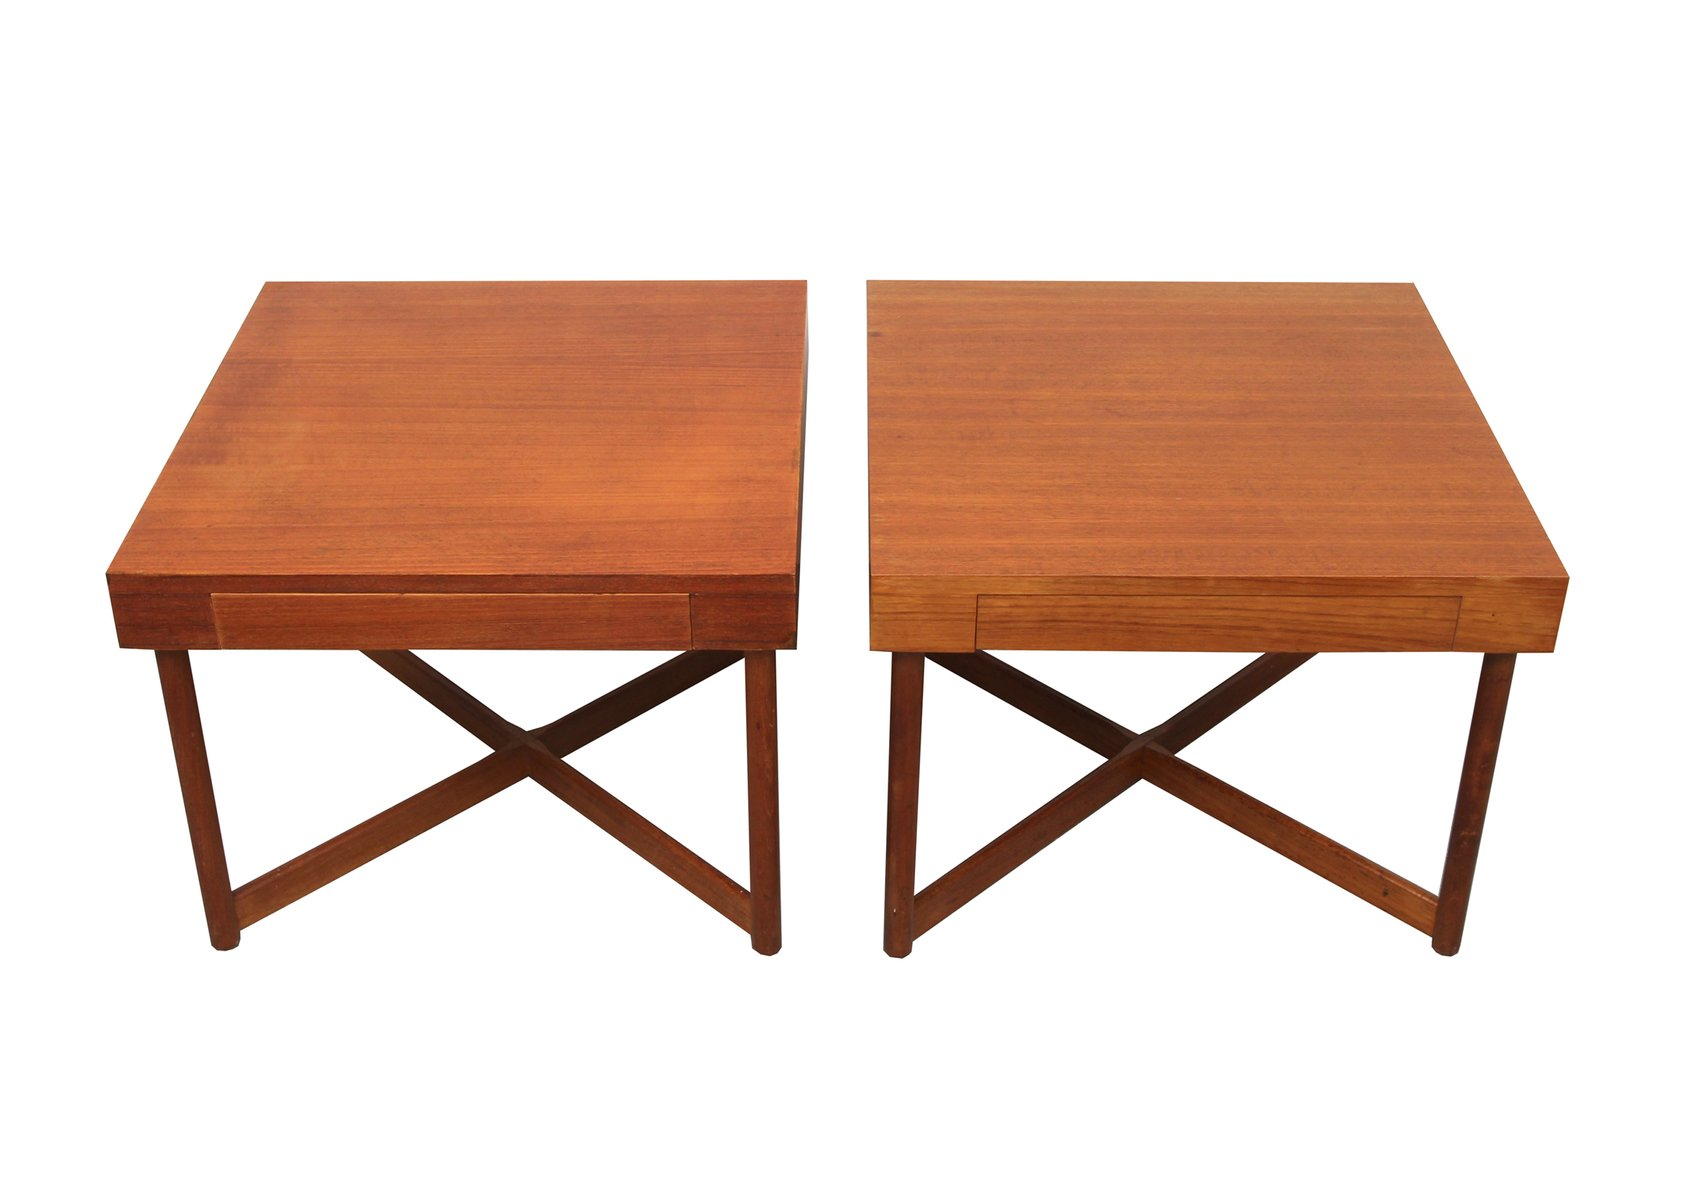 Danish Teak Square Coffee Tables, 1960s, Set Of 2 For Sale